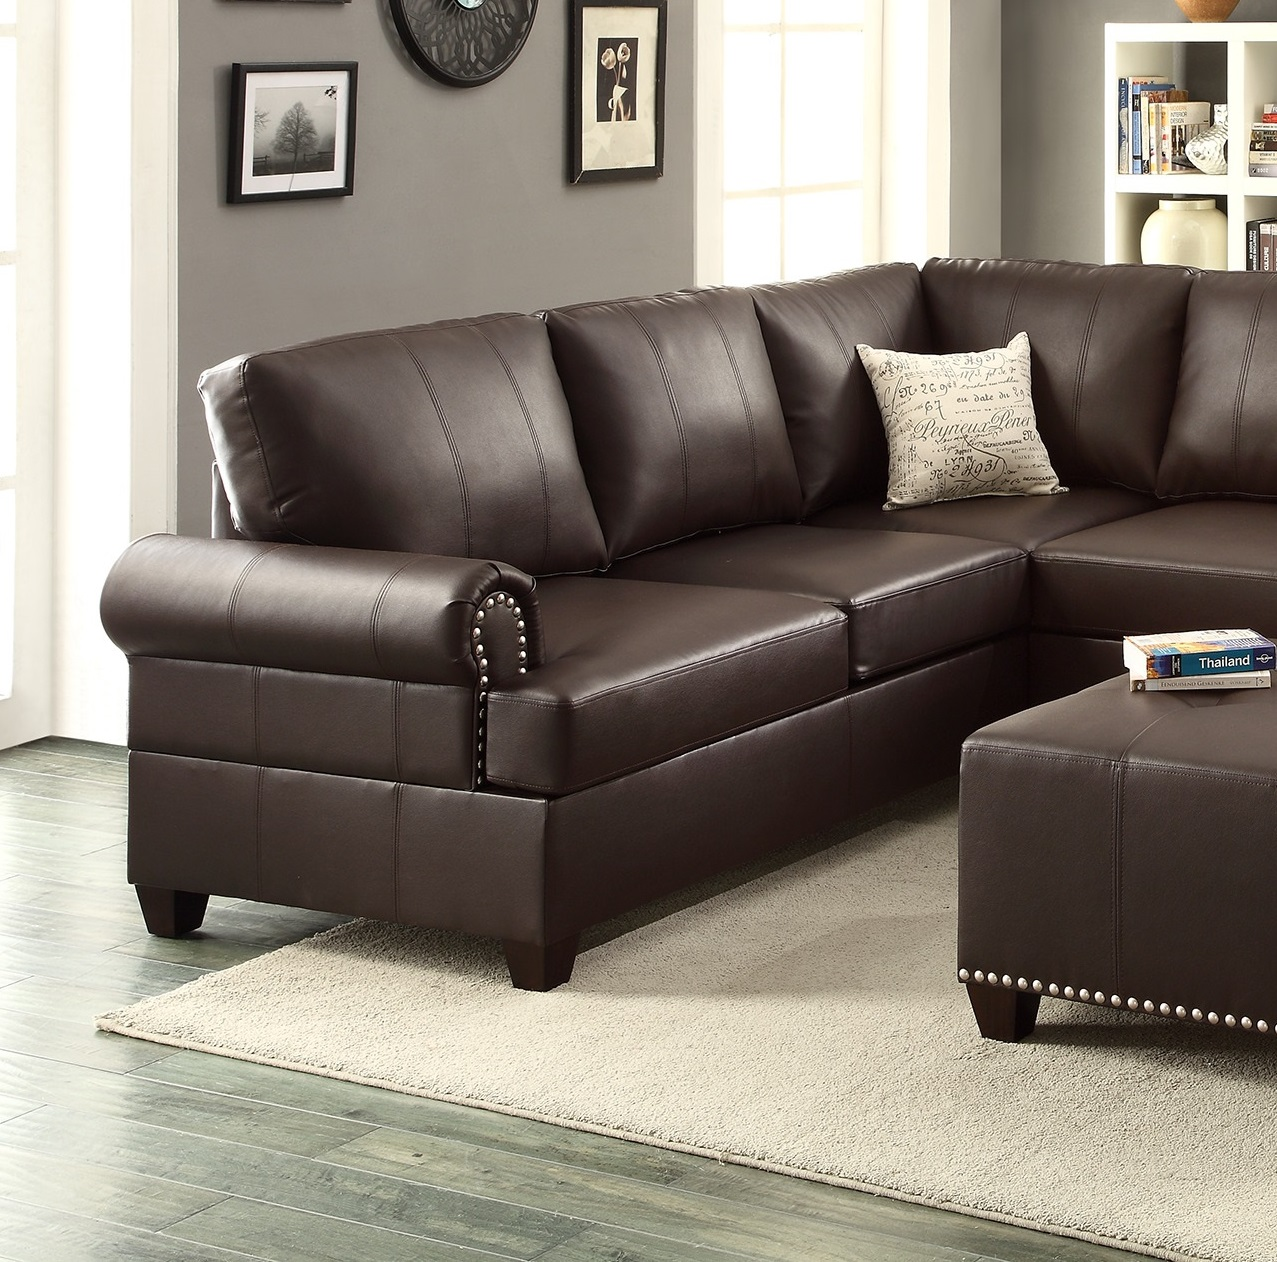 Espresso Leather Sectional Sofa Loveseat Wedge Hot